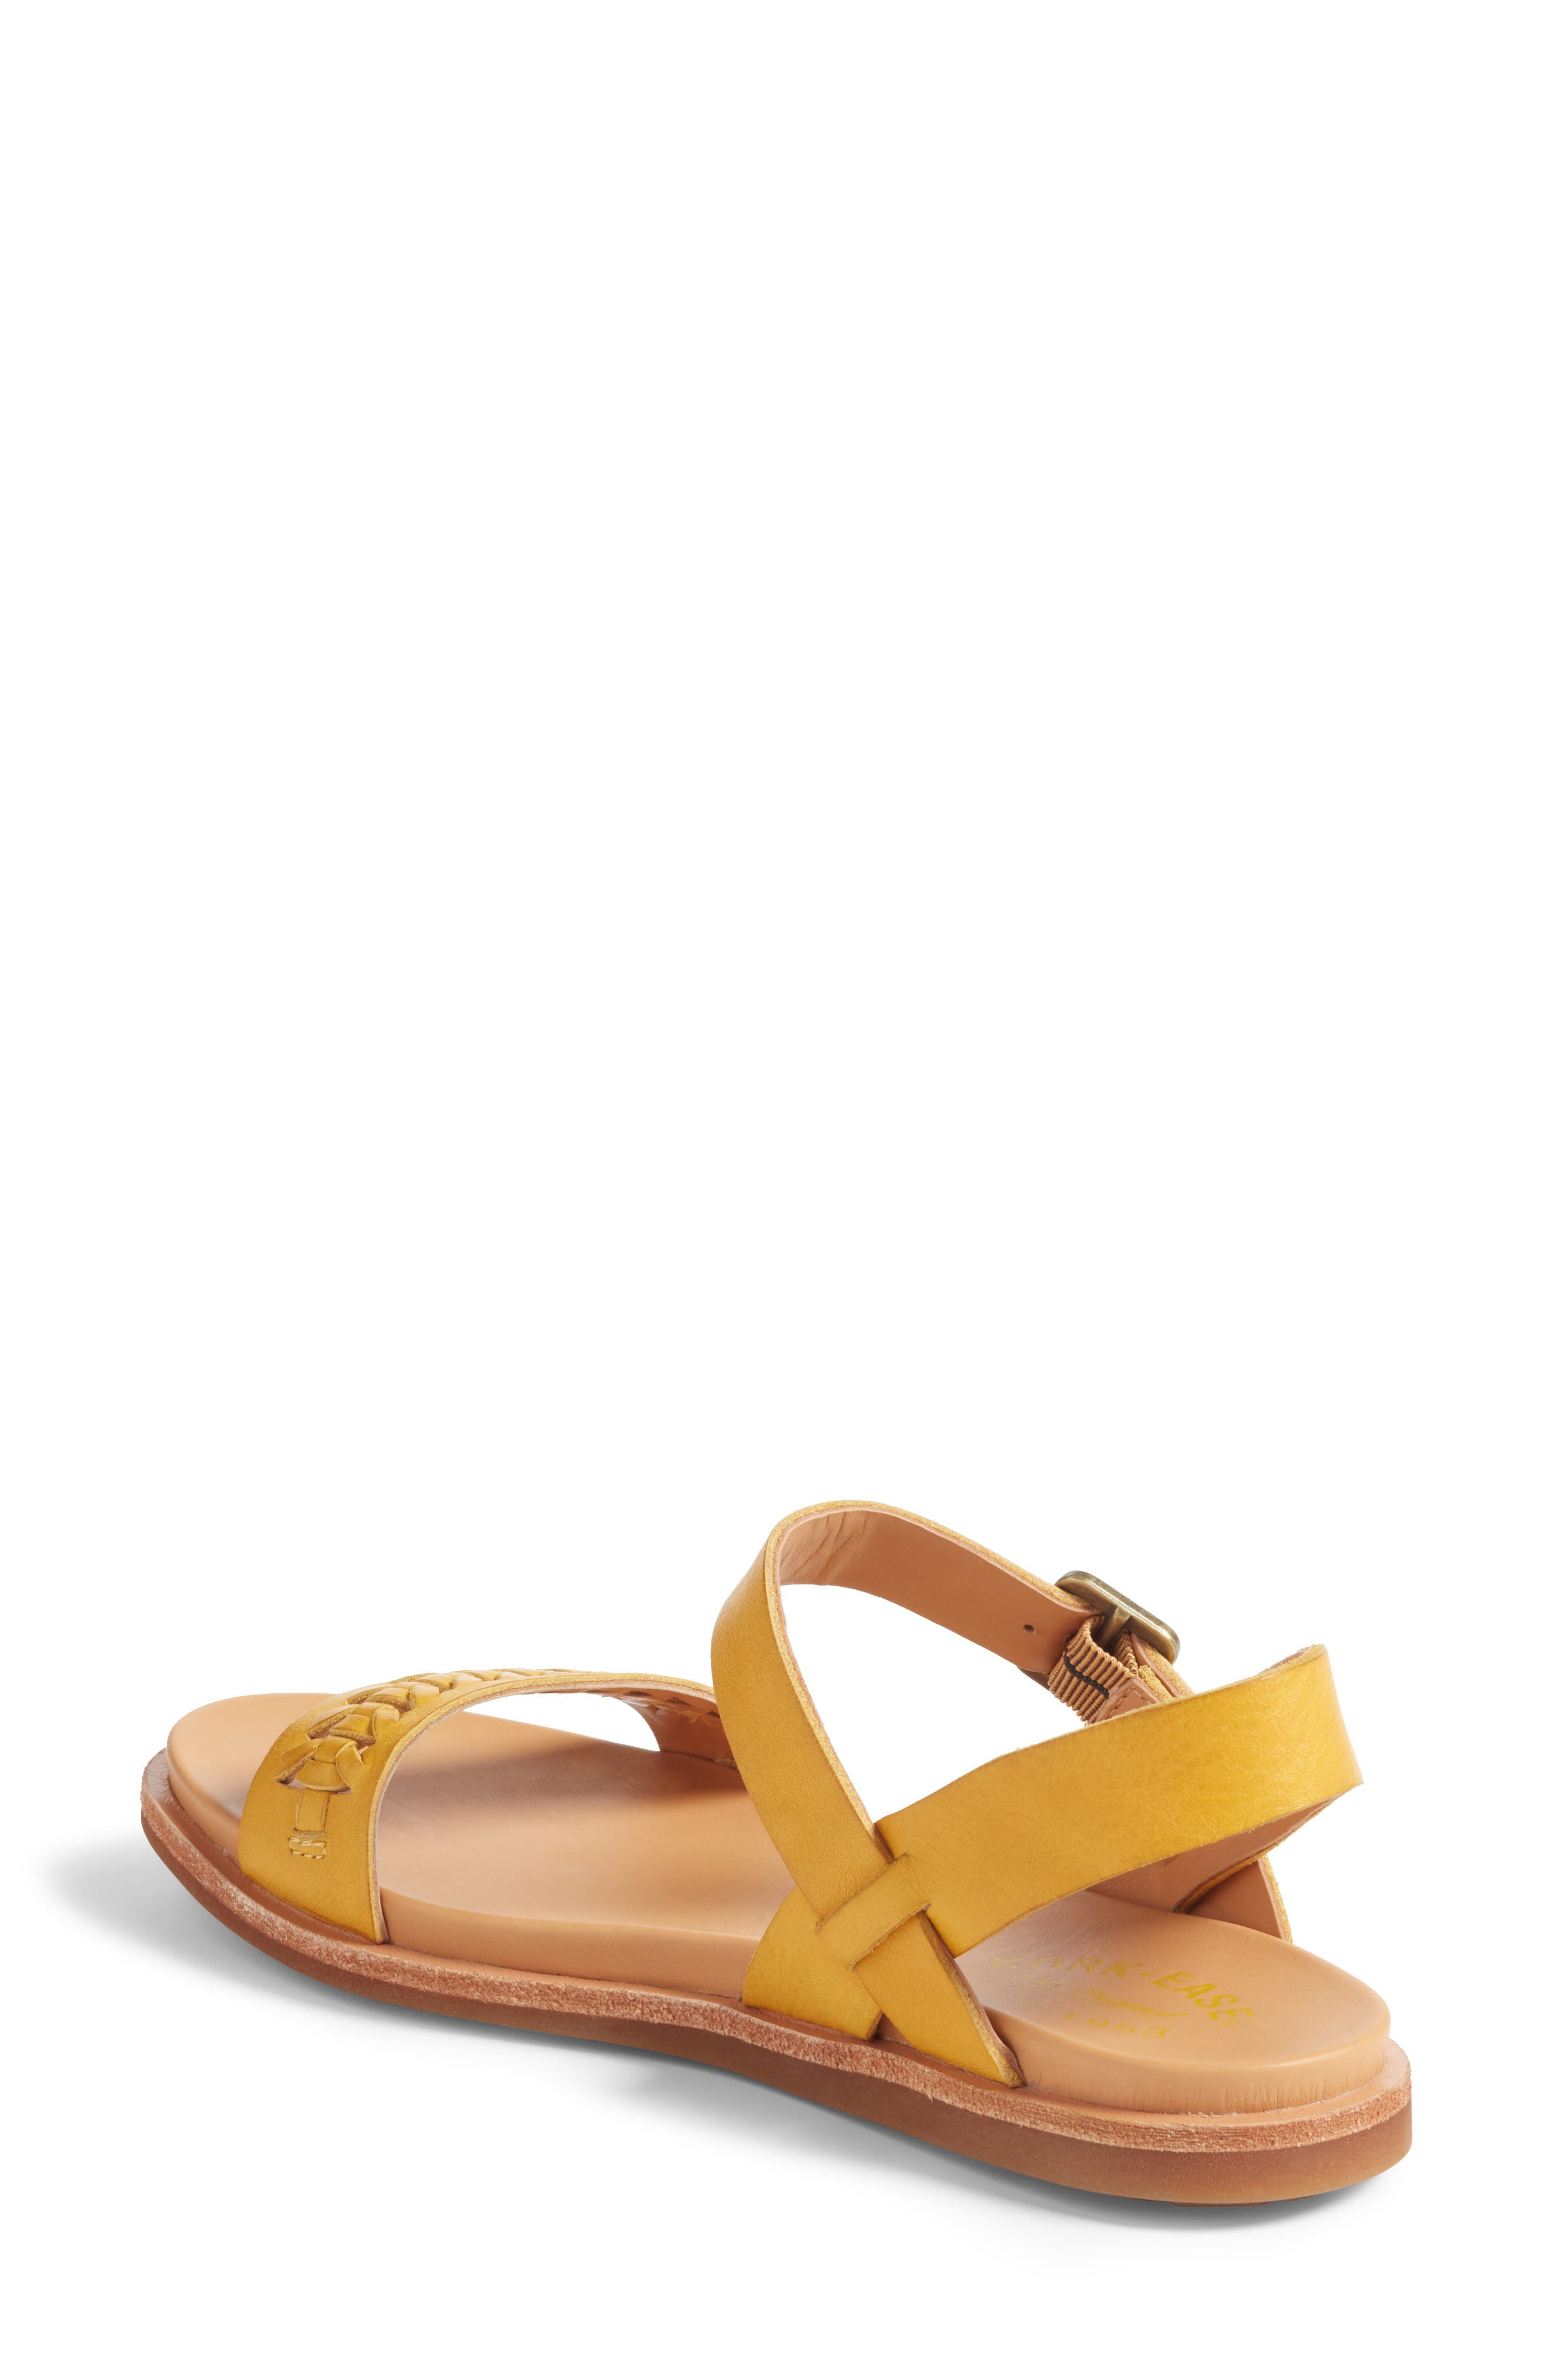 Yucca Braid Sandal,                             Alternate thumbnail 2, color,                             Yellow Leather